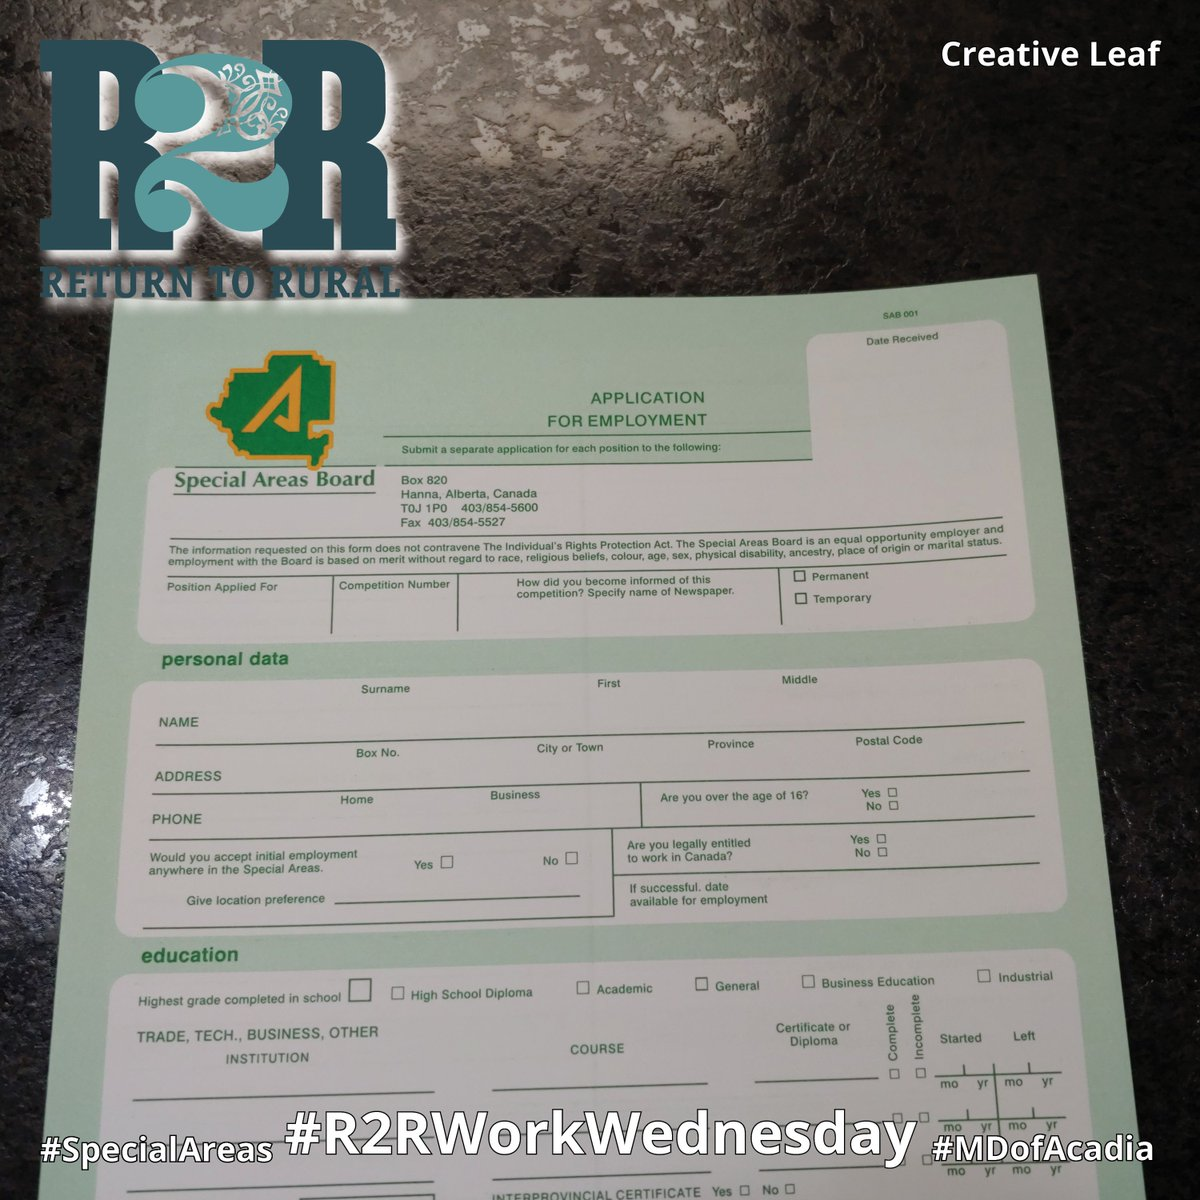 Tomorrow is #R2RWorkWednesday and @SpecialAreas is just one of the many places hiring!  #R2R #SpecialAreas #MDofAcadia #Alberta #Hiring #Return2Rural #WorkWednesday #RuralAlberta #Employment #Rural #RuralJobs #RuralWork #AlbertaJobs⠀  Photo by @CreativeLeafSMpic.twitter.com/VQzDmpLxxF